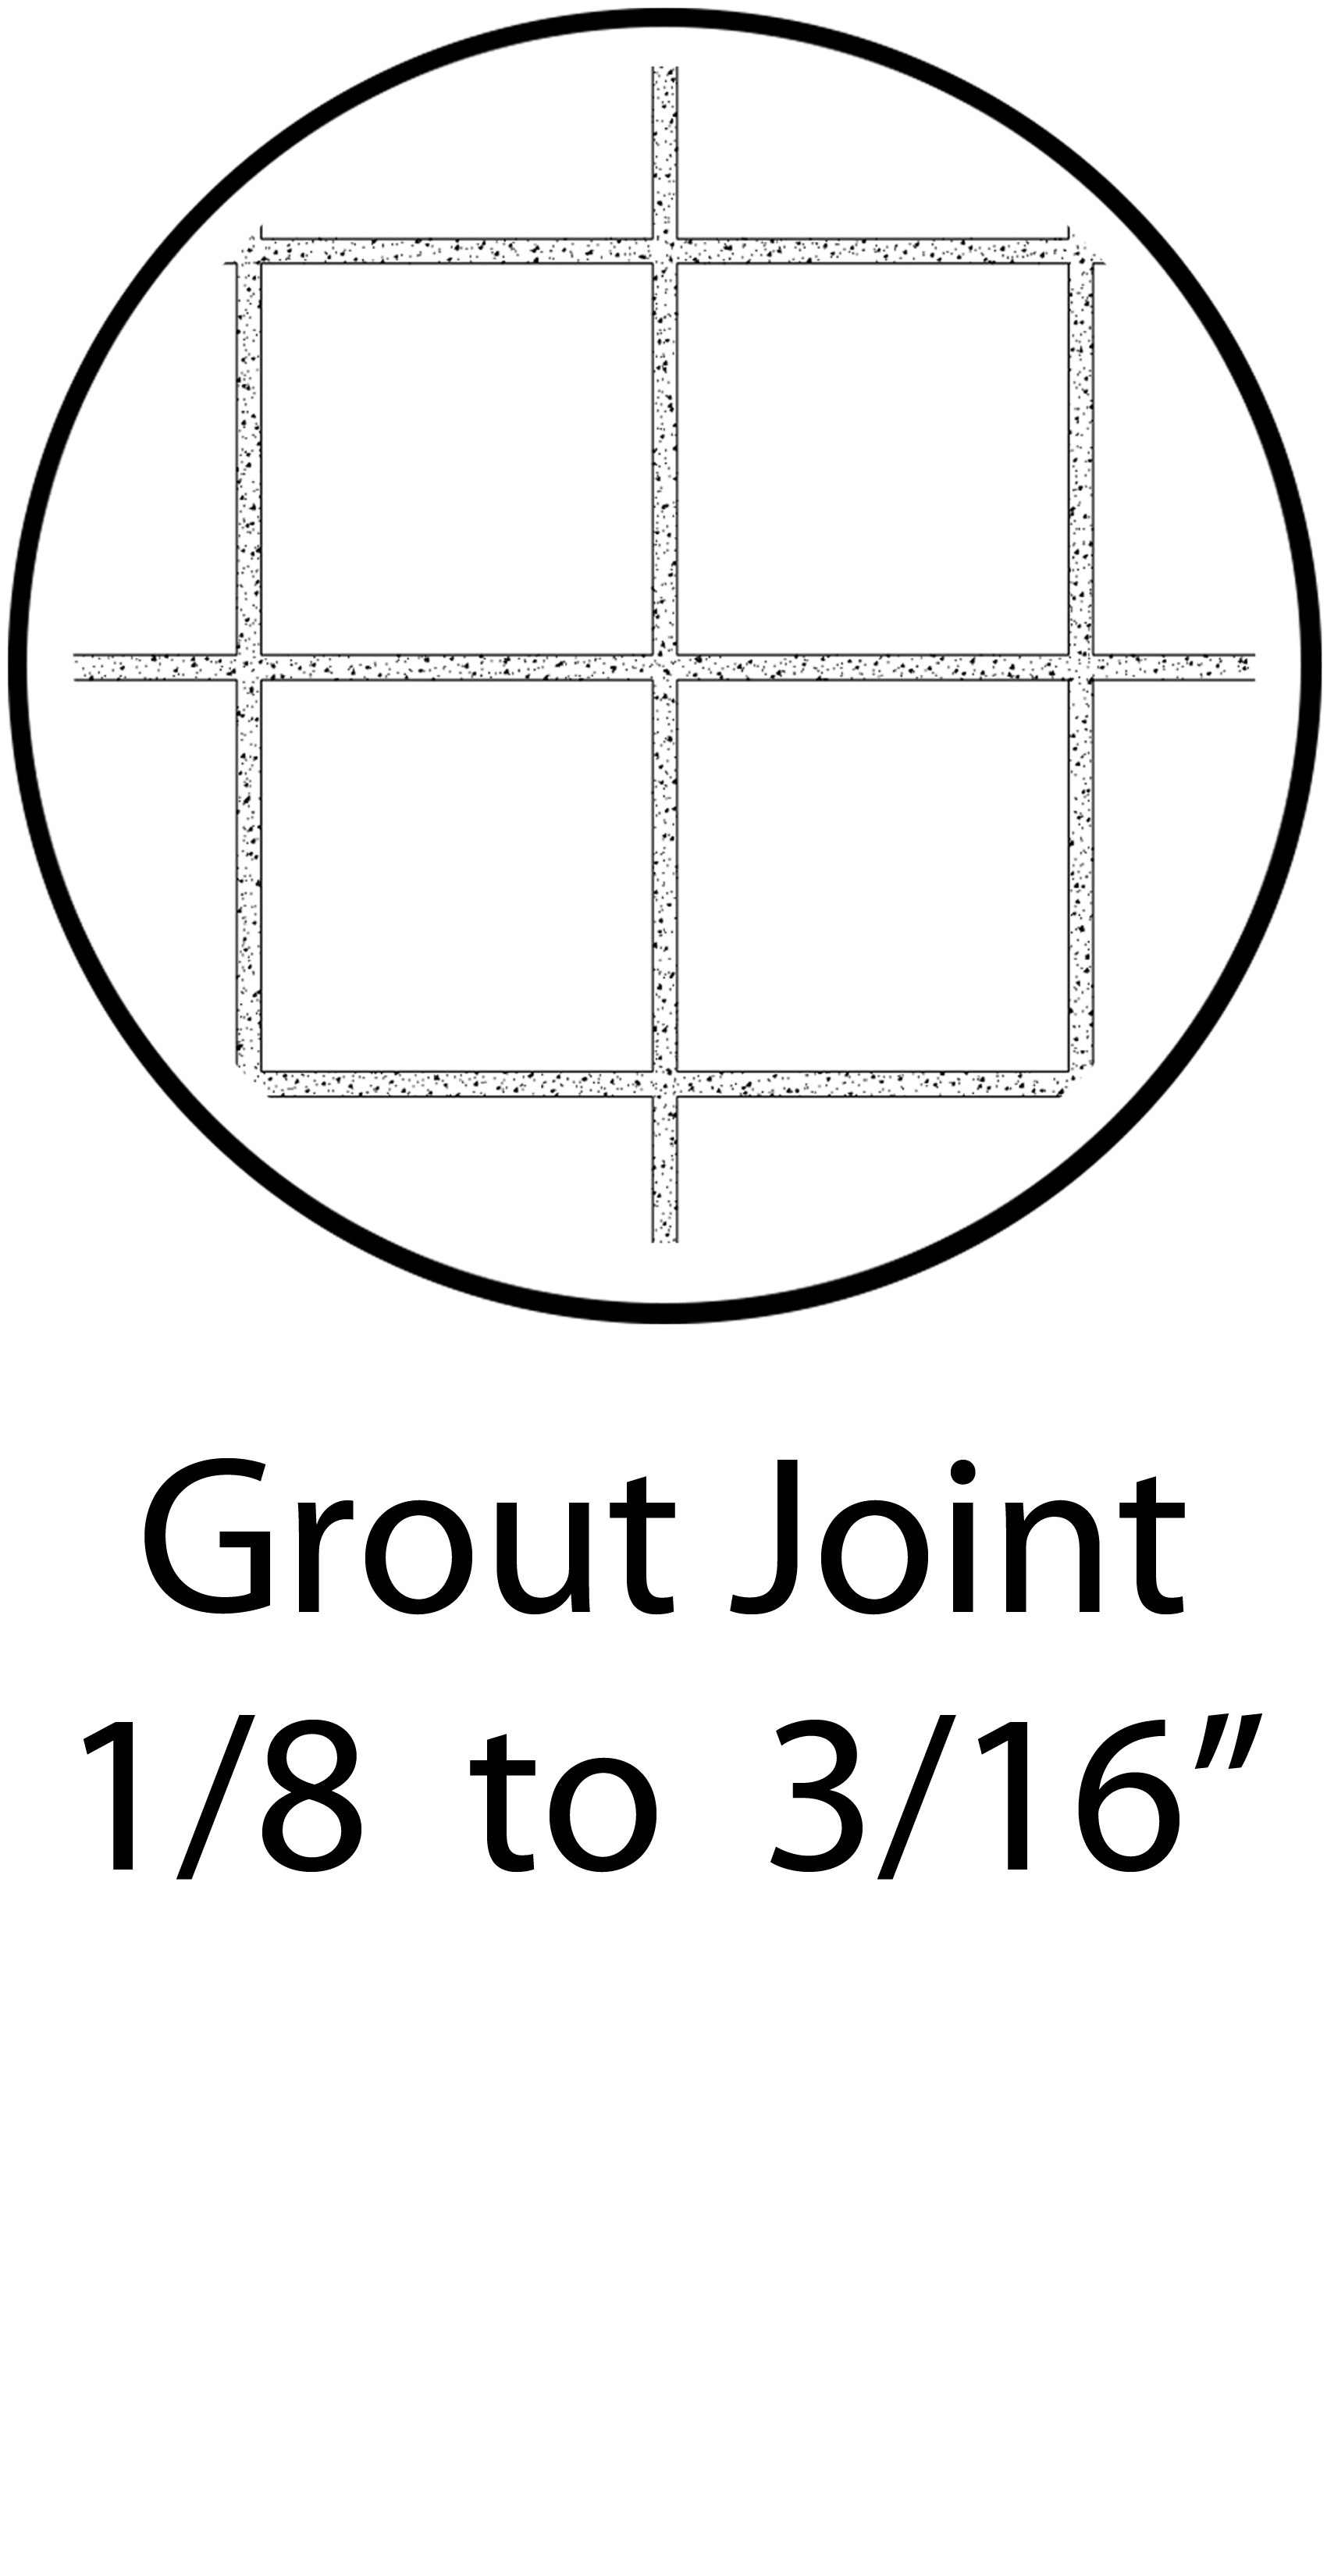 Grout Joint.jpg